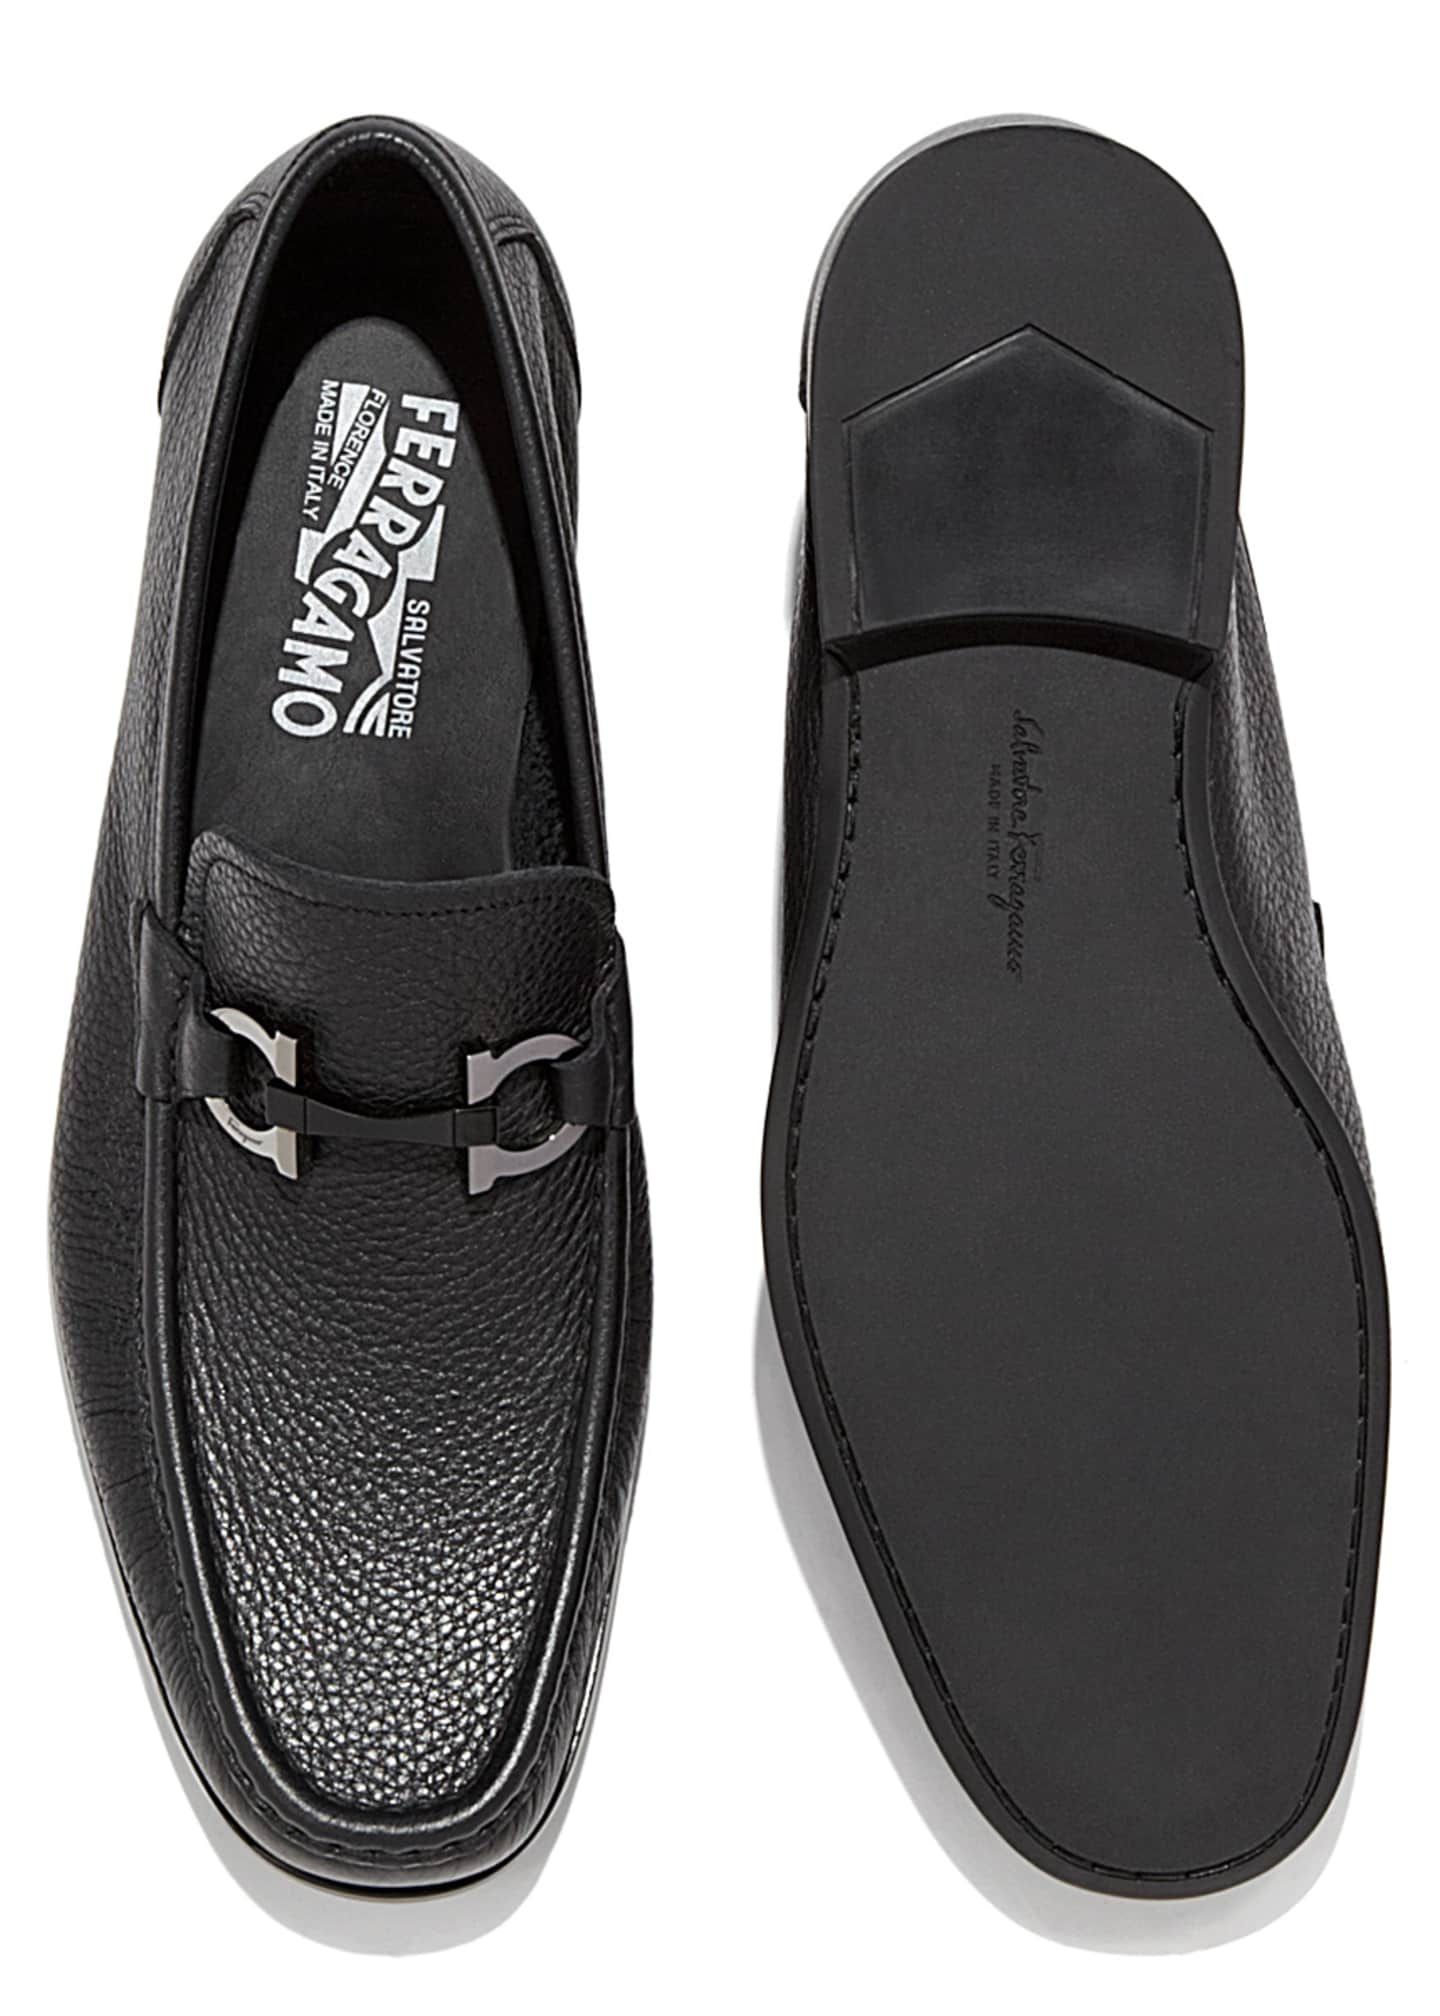 Image 5 of 5: Men's Grained Calf Leather Bit Loafer